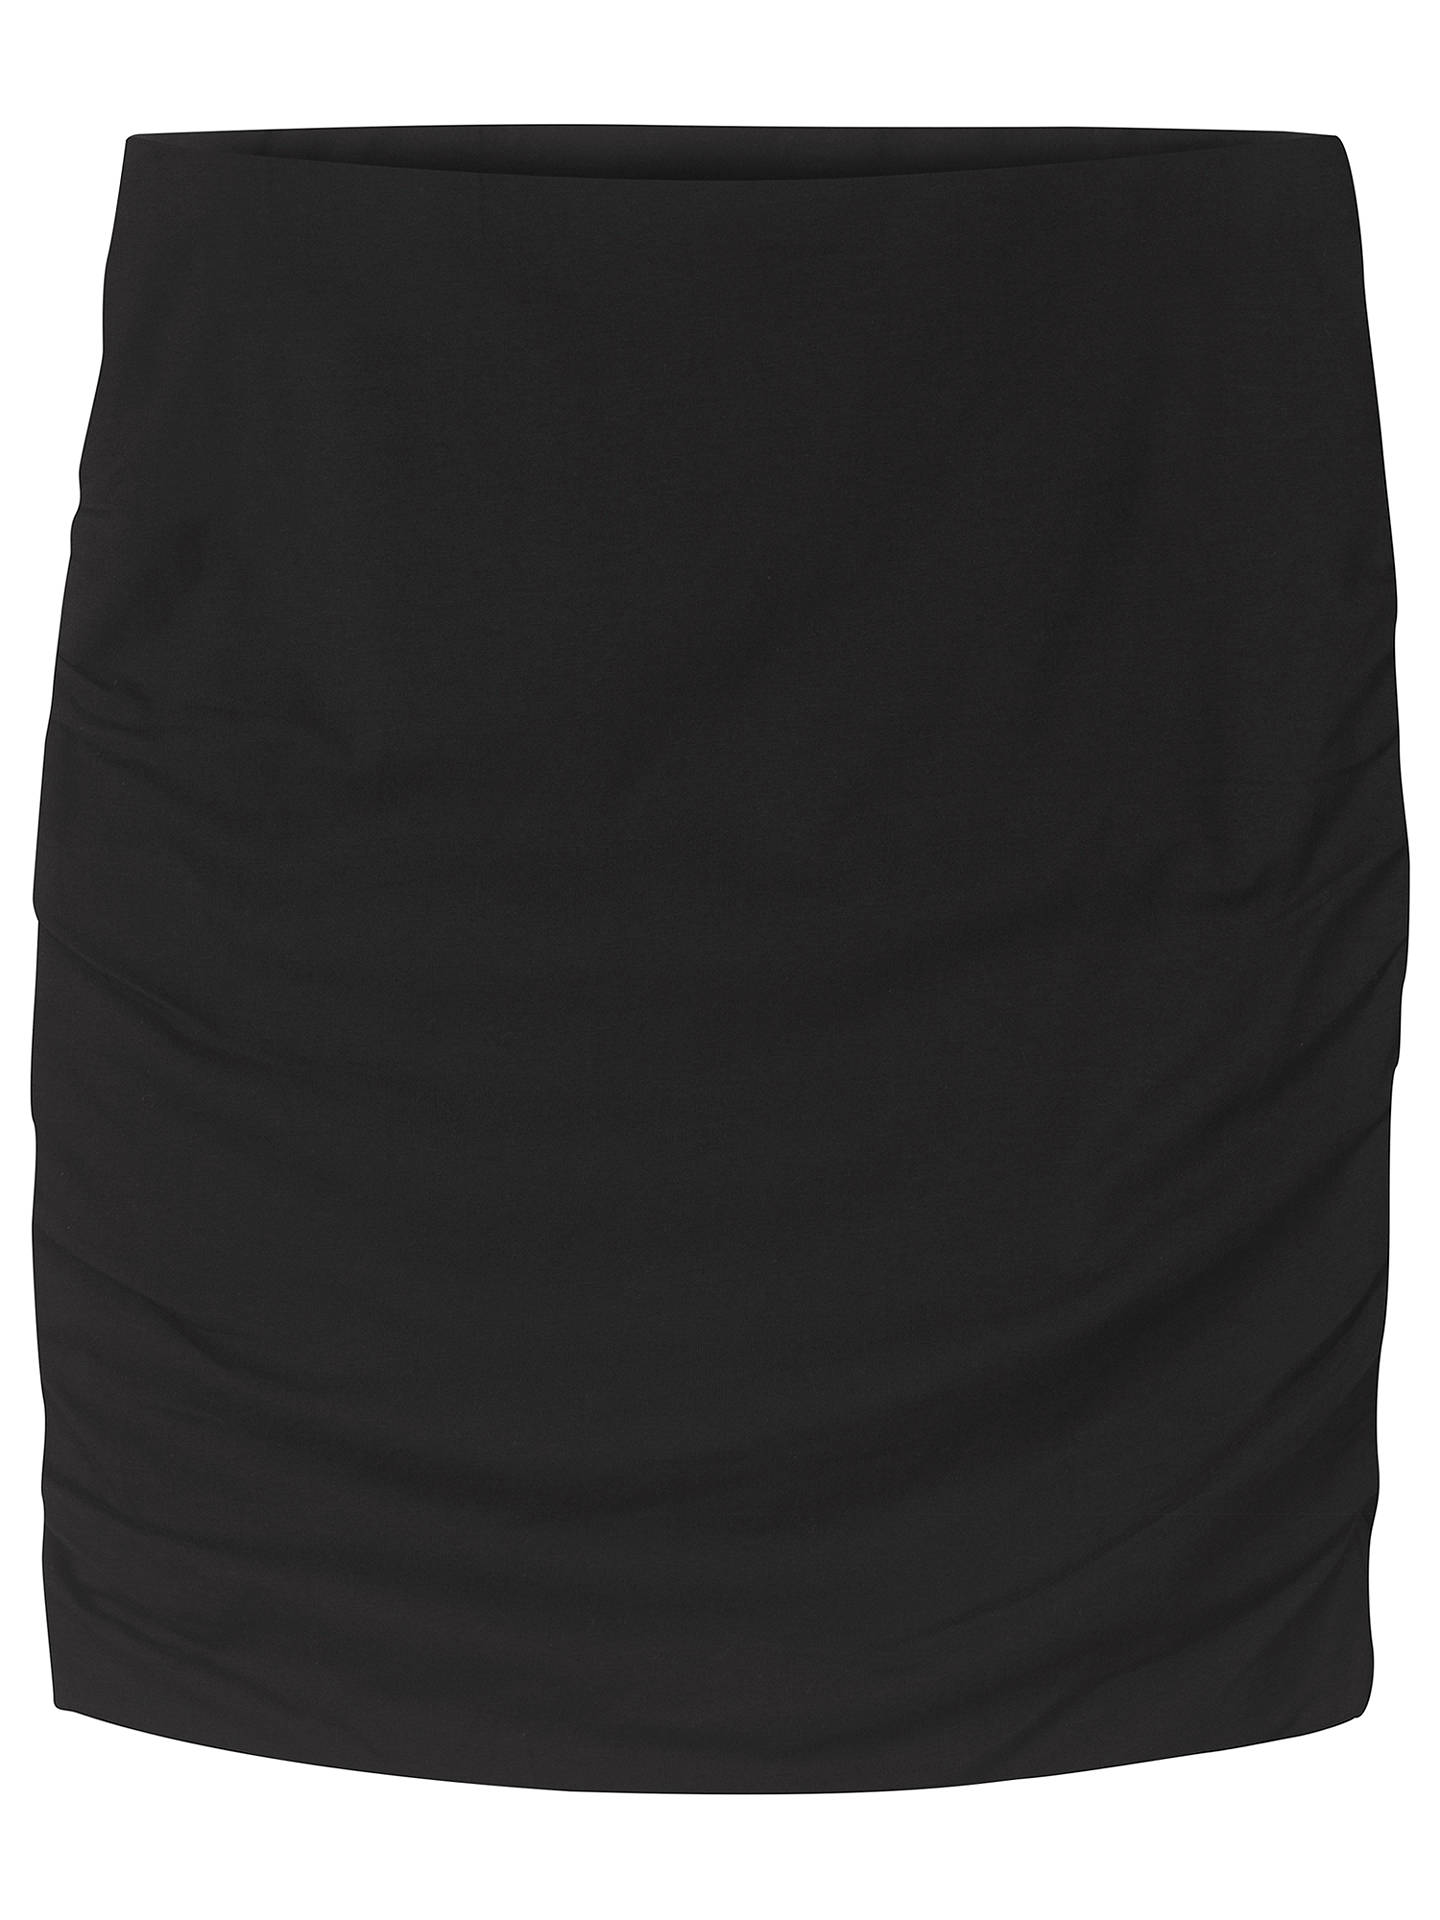 Buyhush Modal Ruched Skirt, Black, XS Online at johnlewis.com